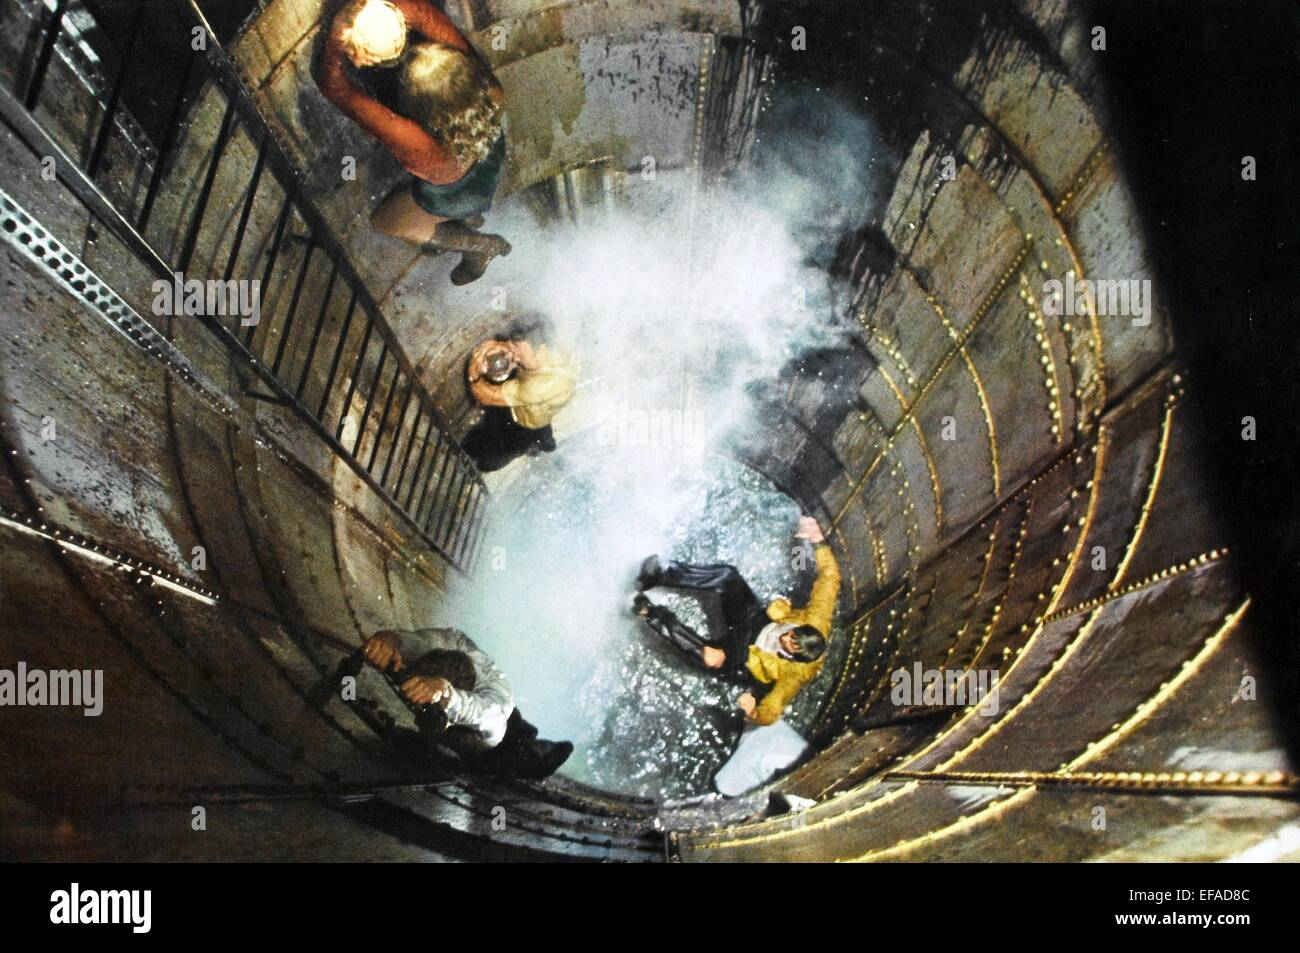 Sinking Ship Scene The Poseidon Adventure Stock